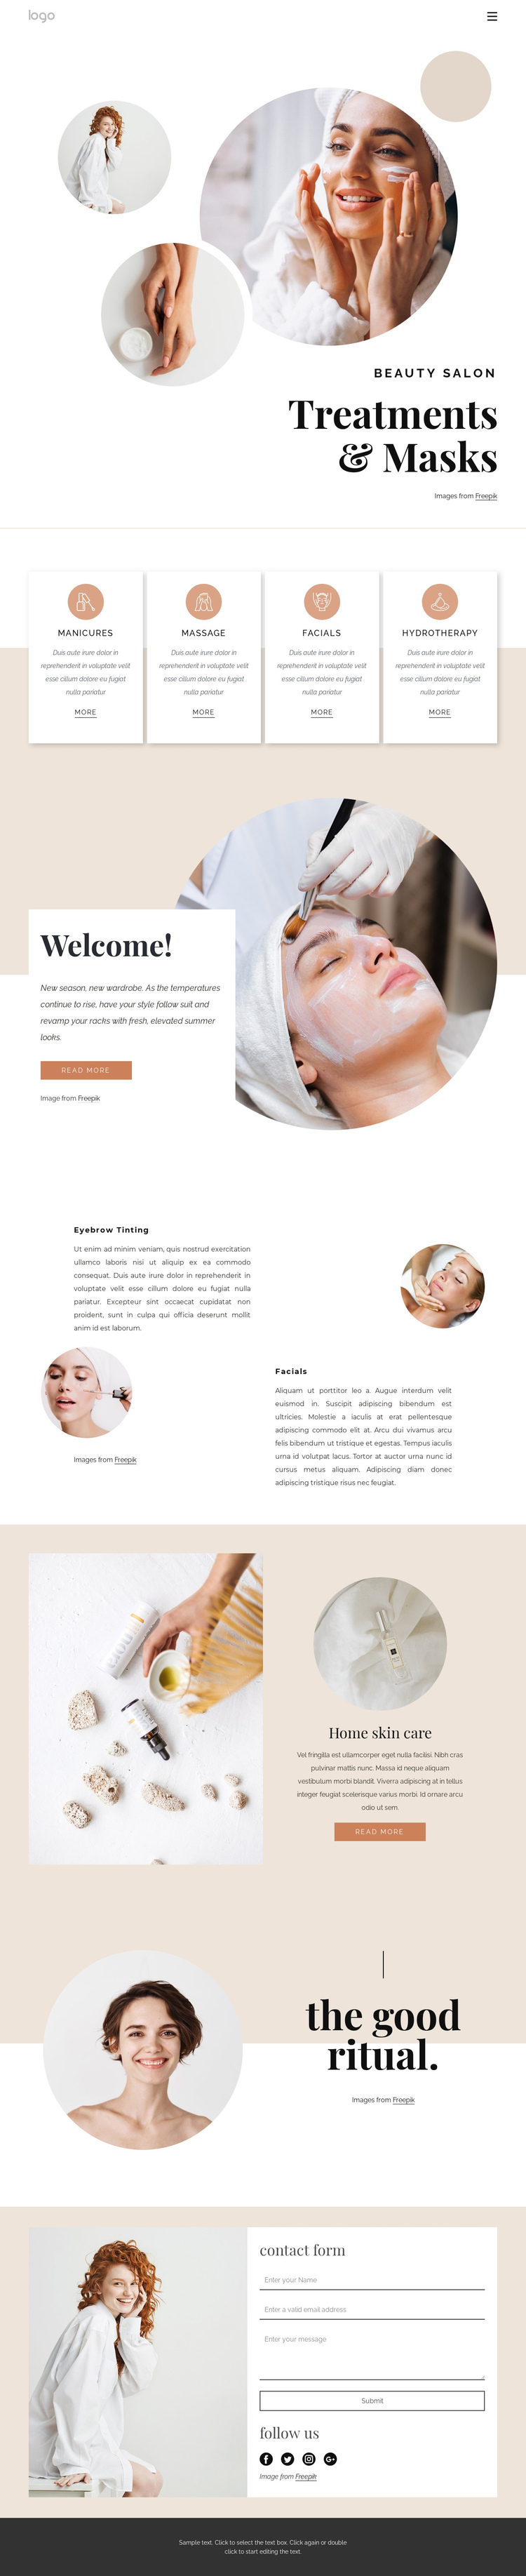 Body treatments and massages Website Builder Software